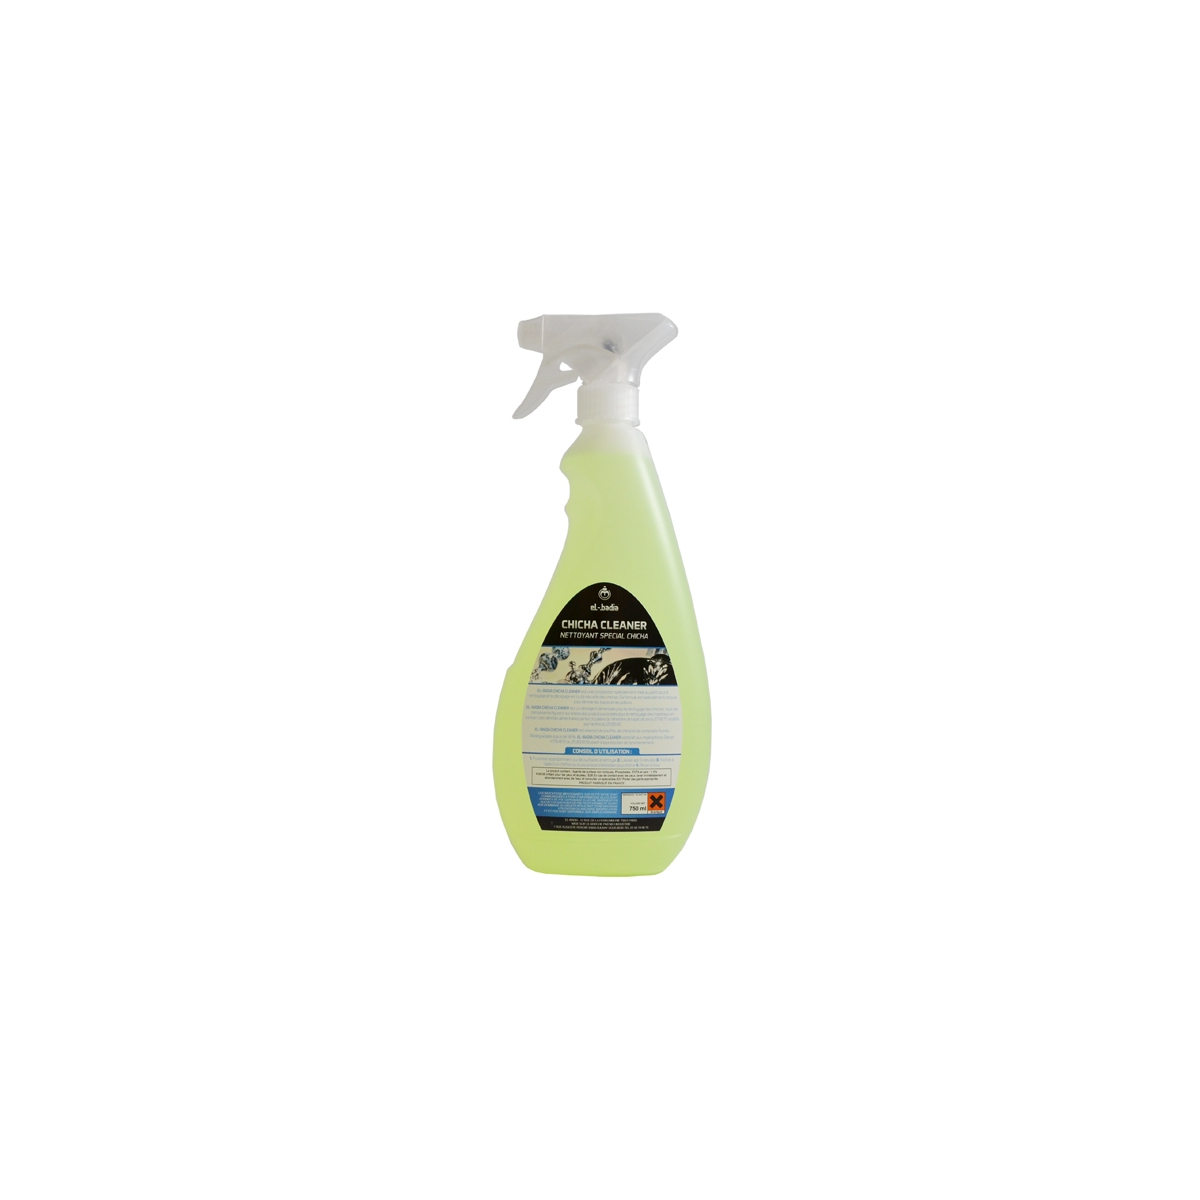 EL-BADIA CHICHA CLEANER 750ml